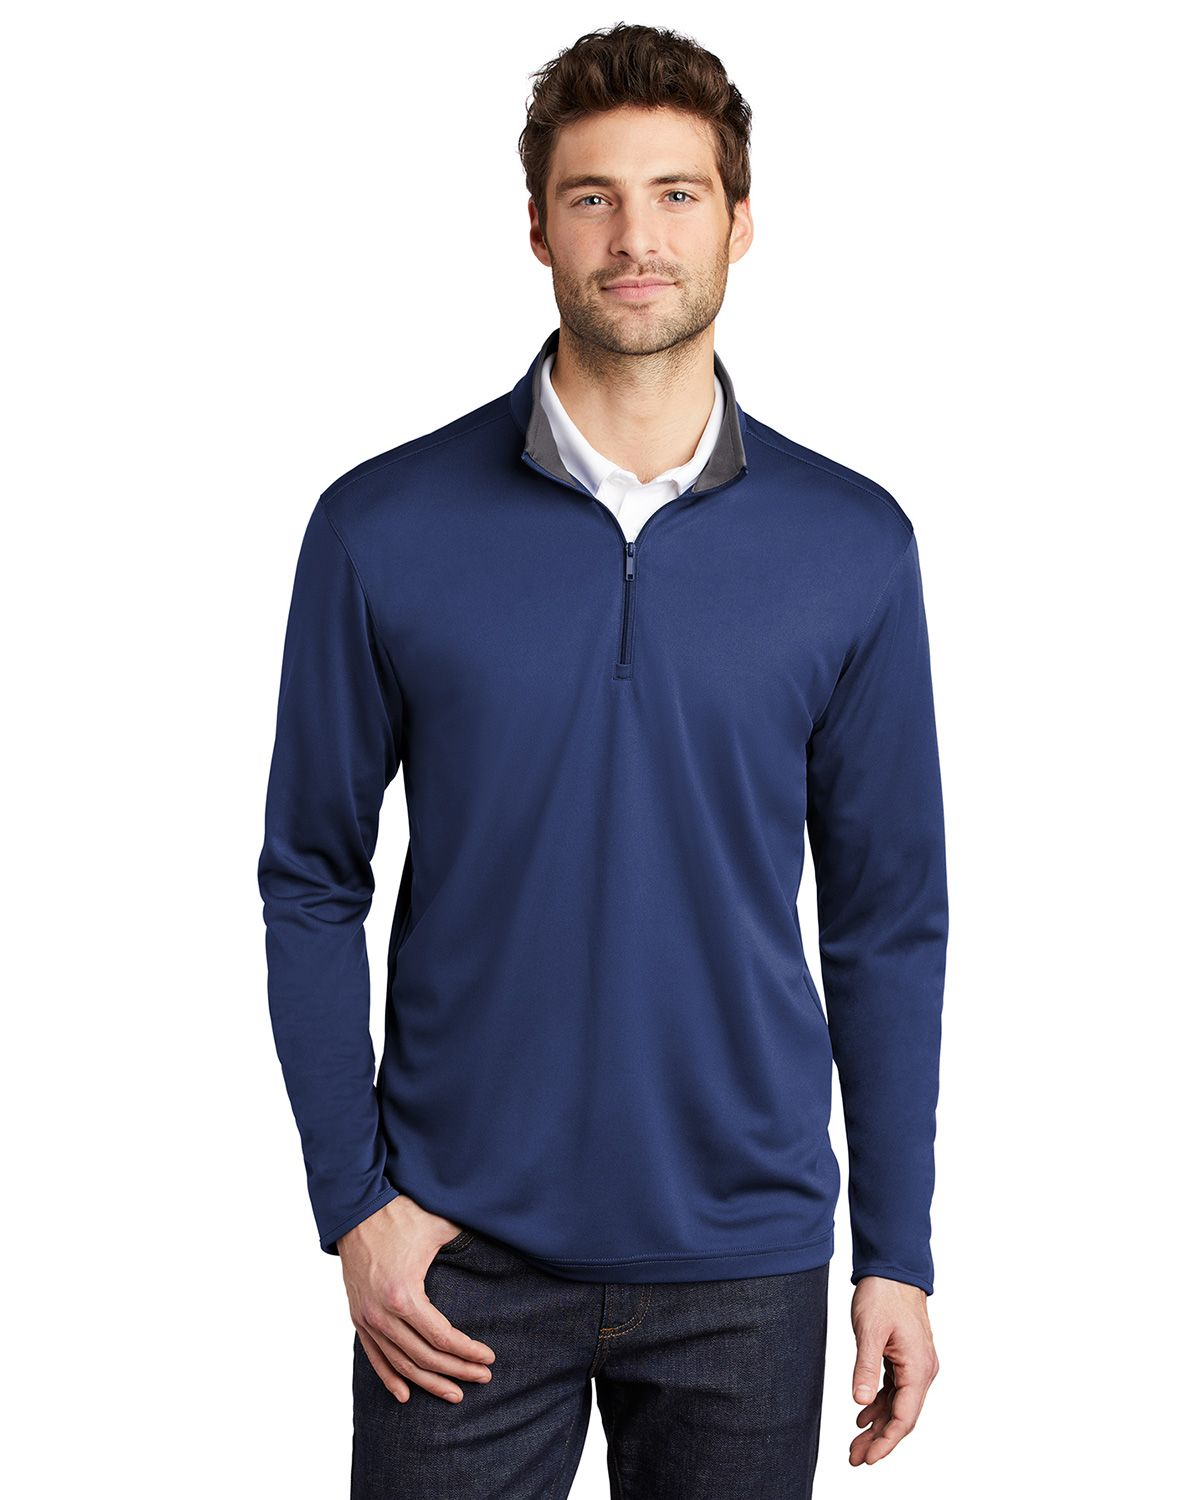 Port Authority K584 Men's Silk Touch Performance 1/4-Zip - Royal/ Steel Grey - XS #silk